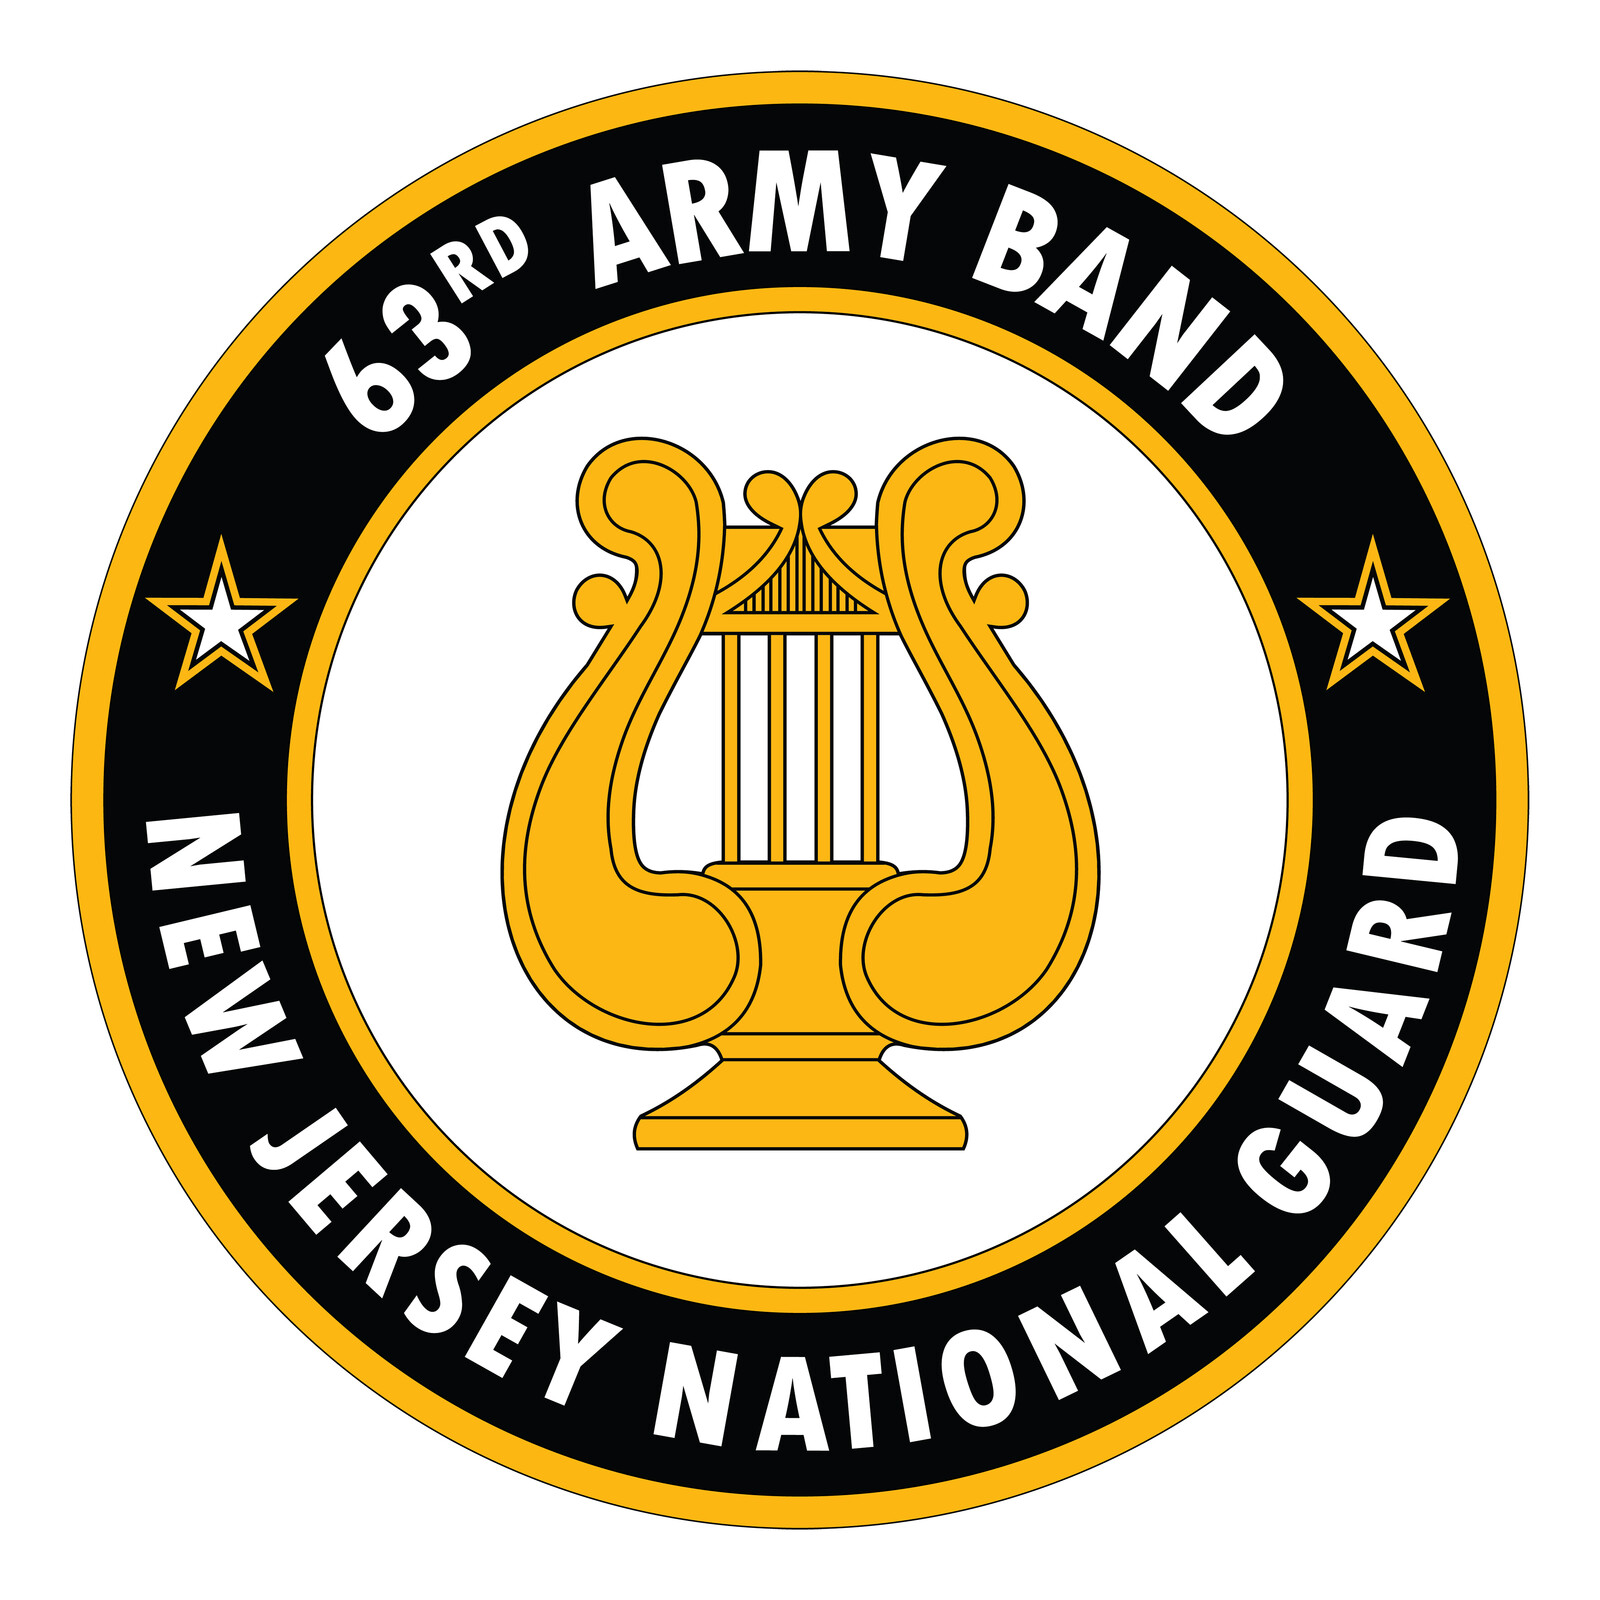 New Jersey Army National Guard Band (the 63rd Army Band) Crest